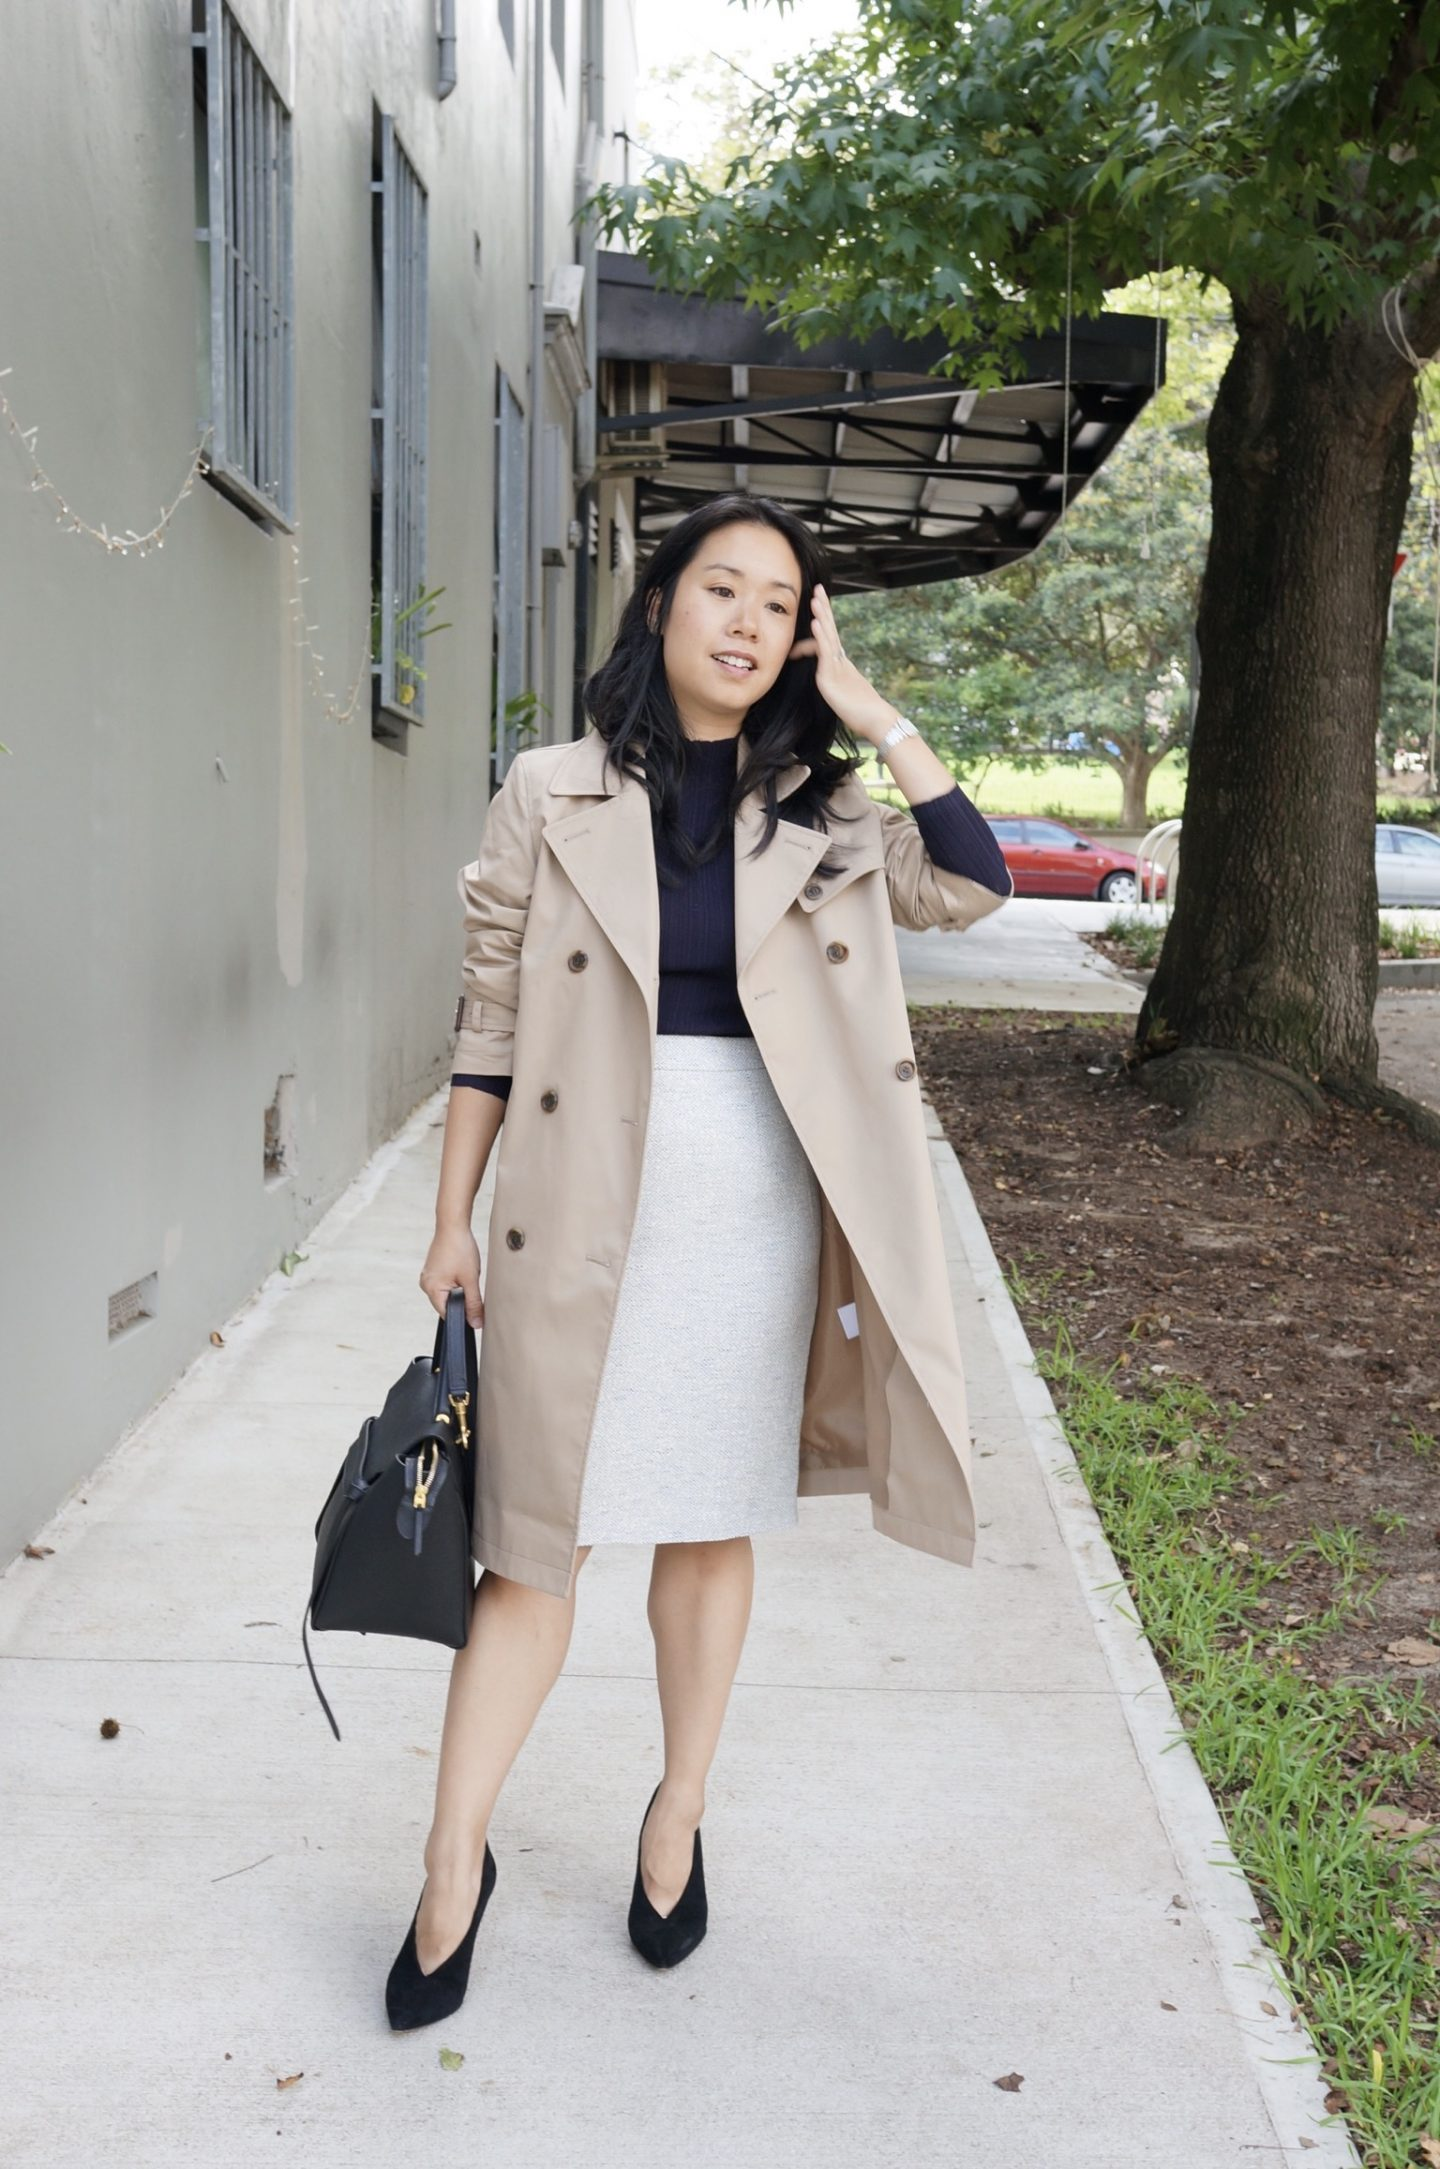 uniqlo trench coat styled 4 ways